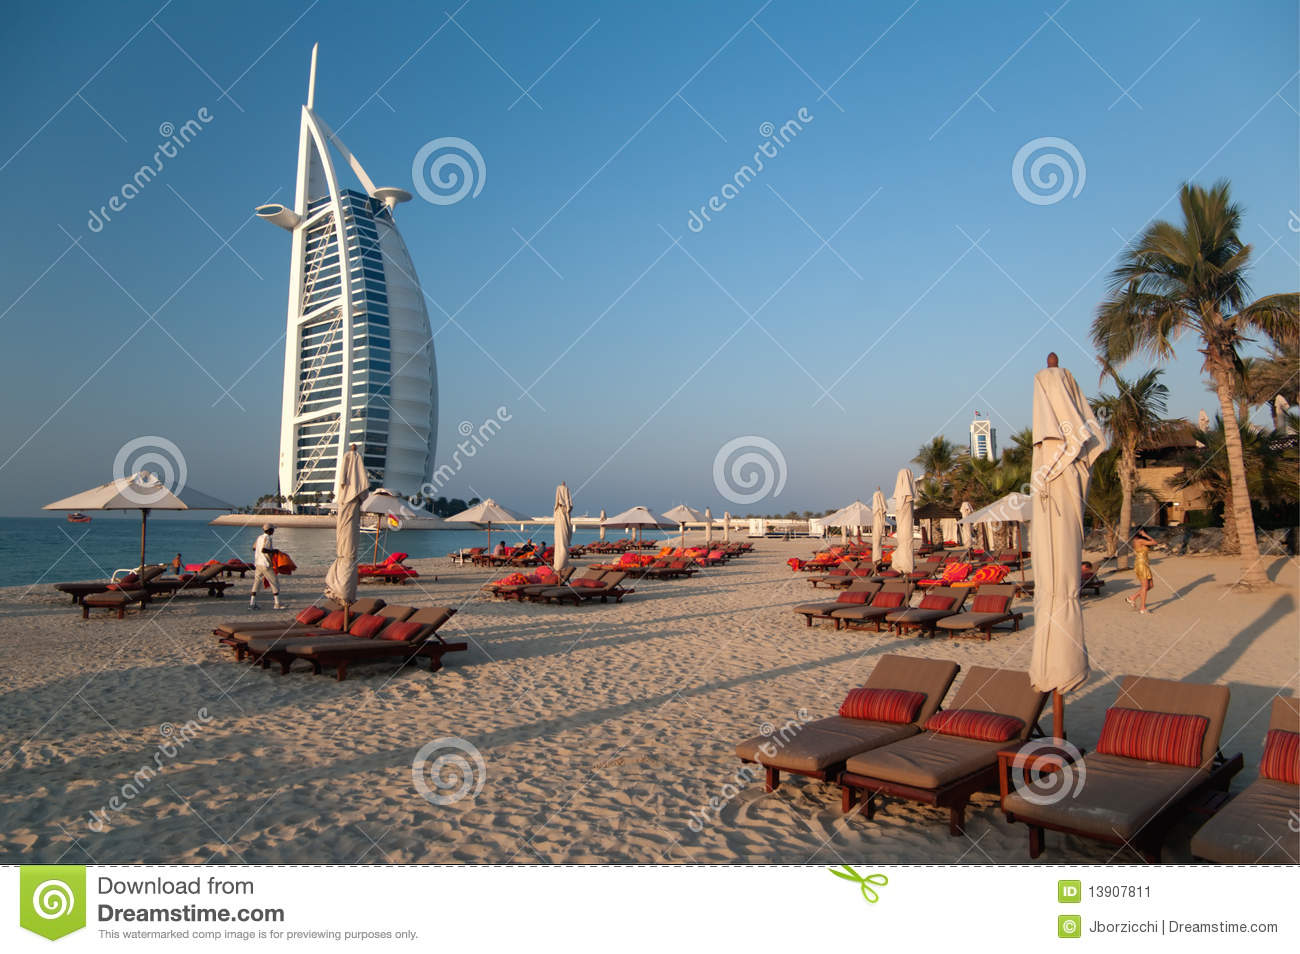 Dubai Beach,UAE Stock Image - Image: 13907811